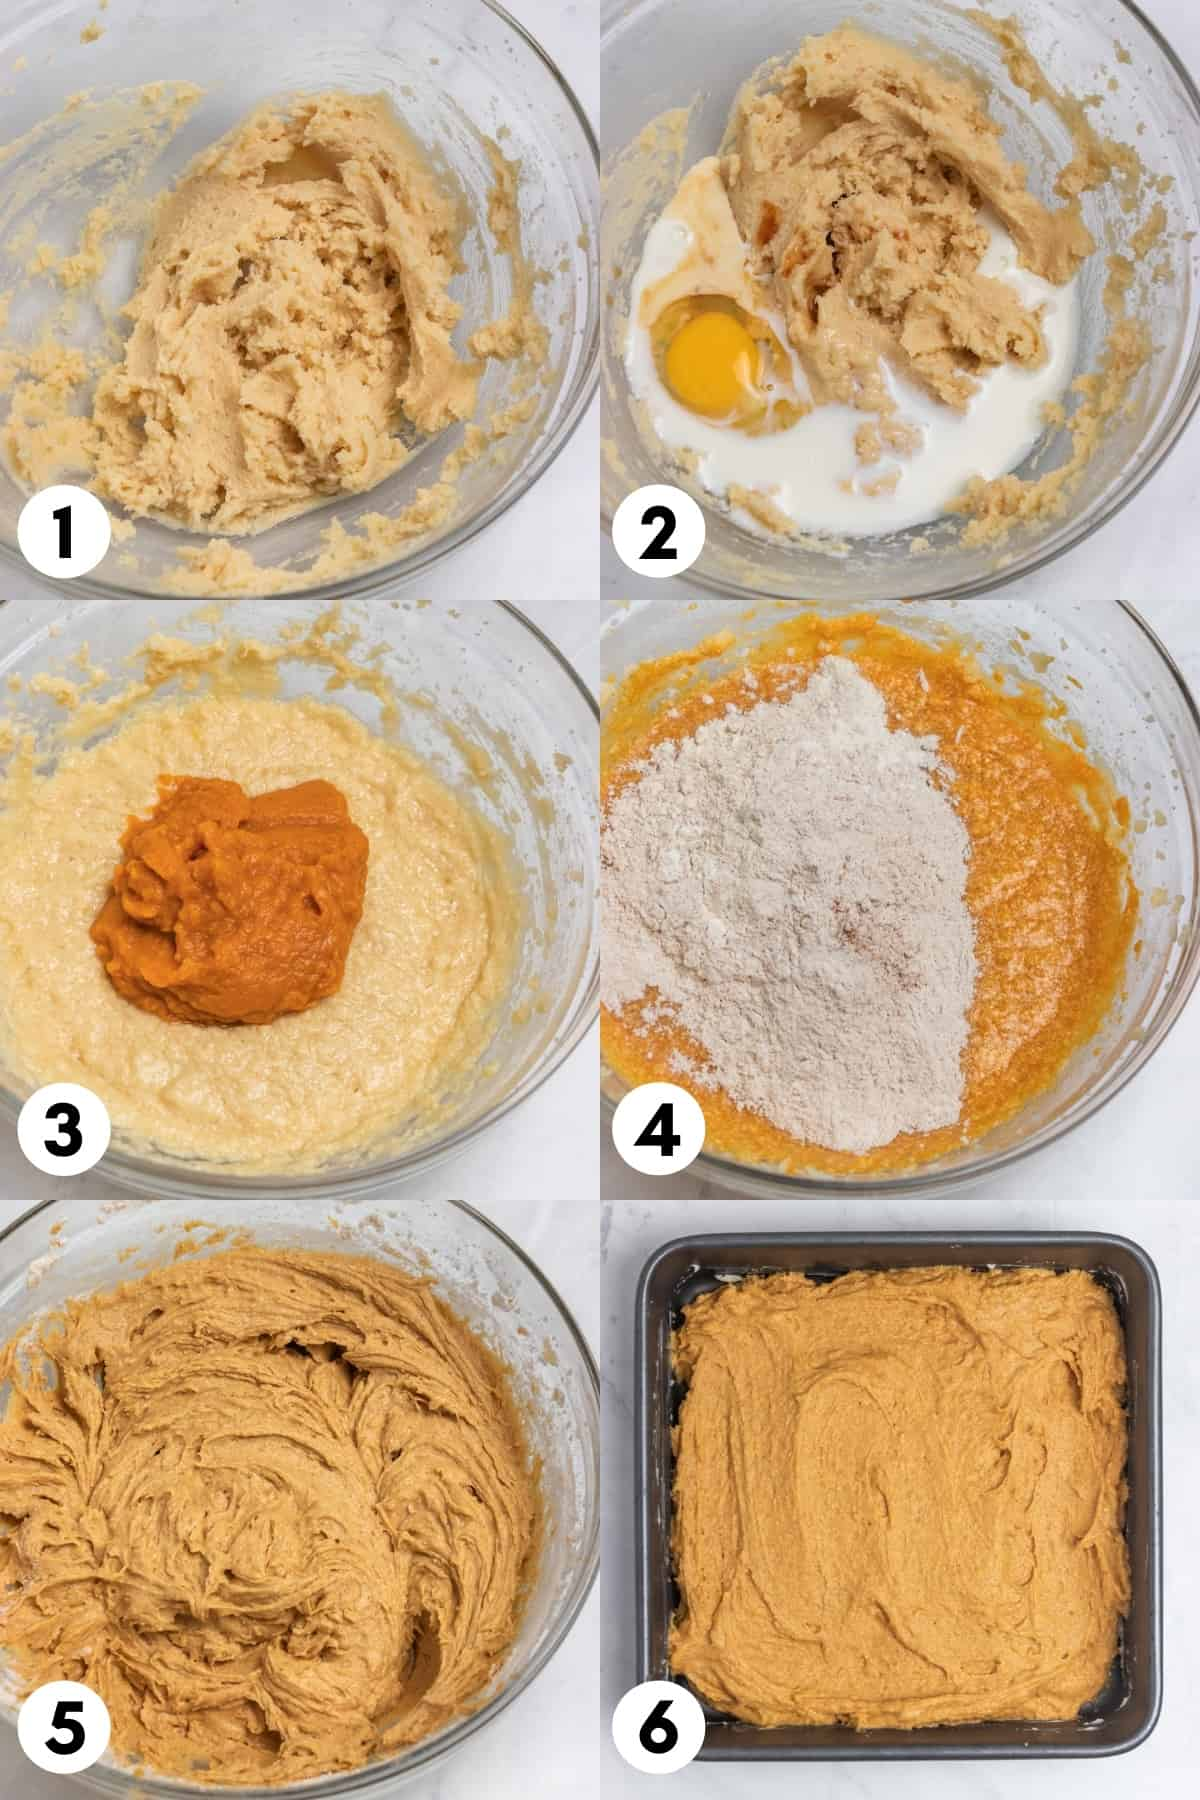 Step by step photos on how to make coffee cake recipe with pumpkin.